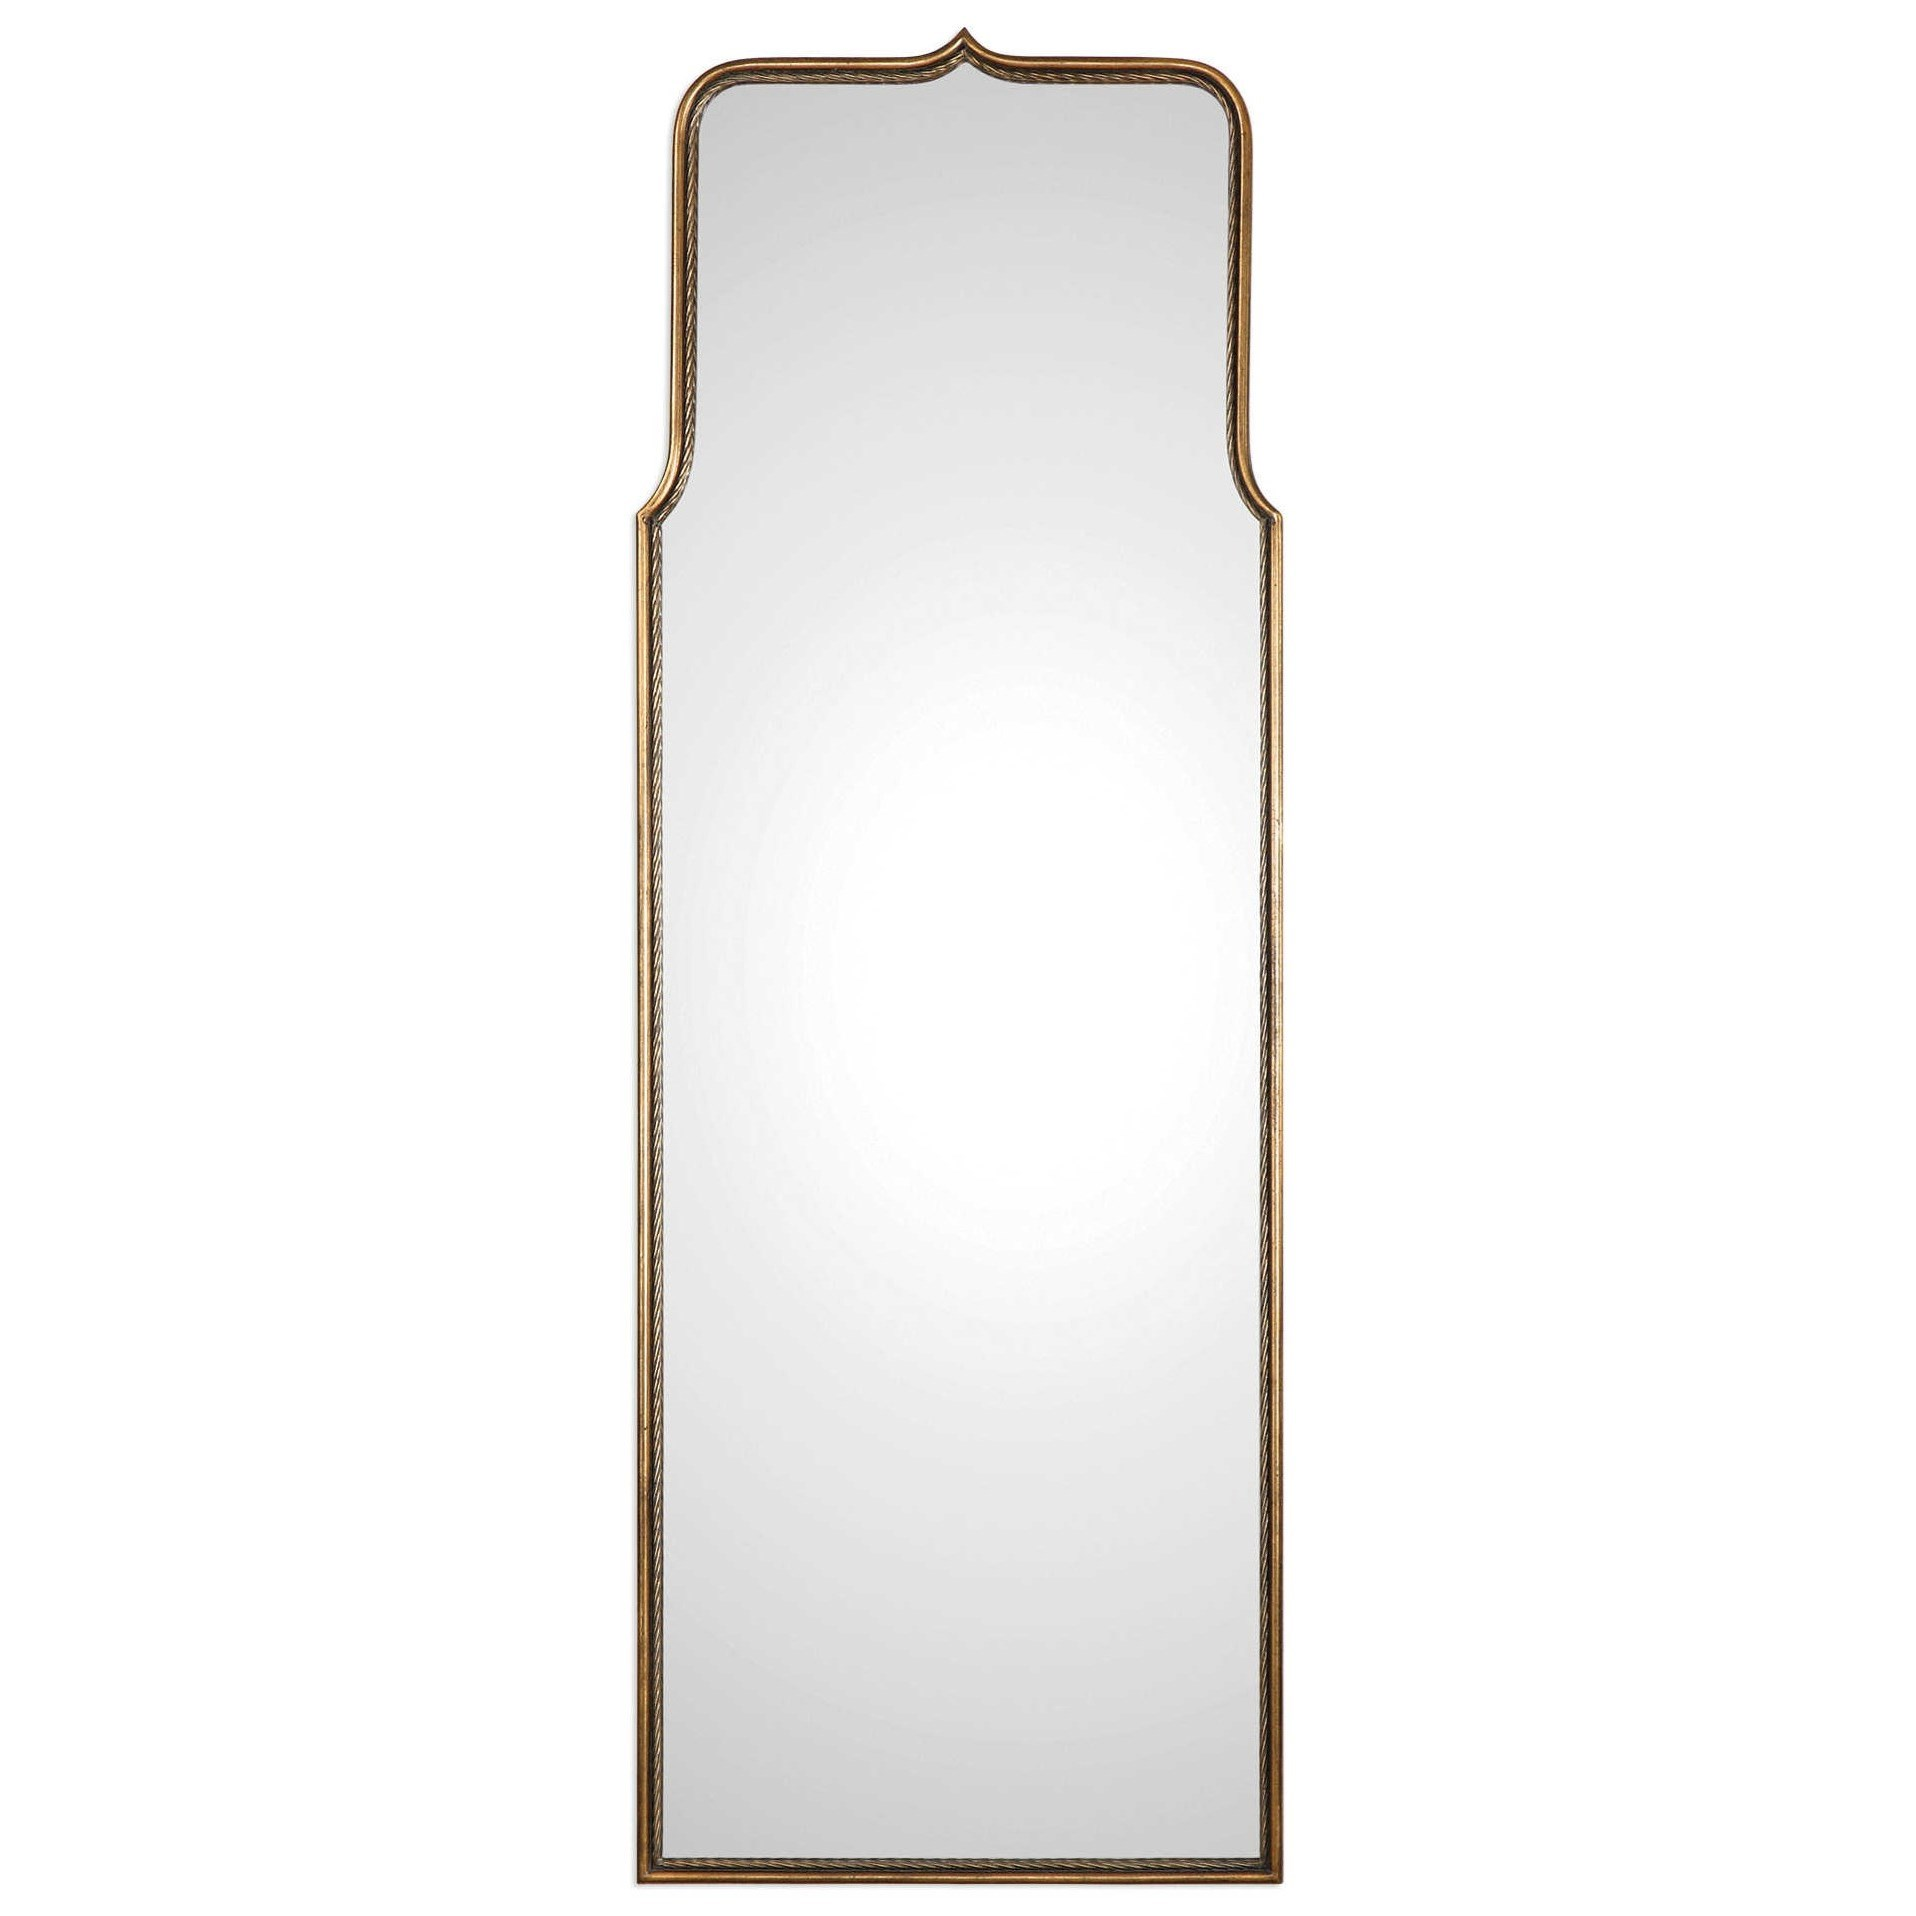 Mirrors Adelasia Antiqued Gold Mirror by Uttermost at Upper Room Home Furnishings